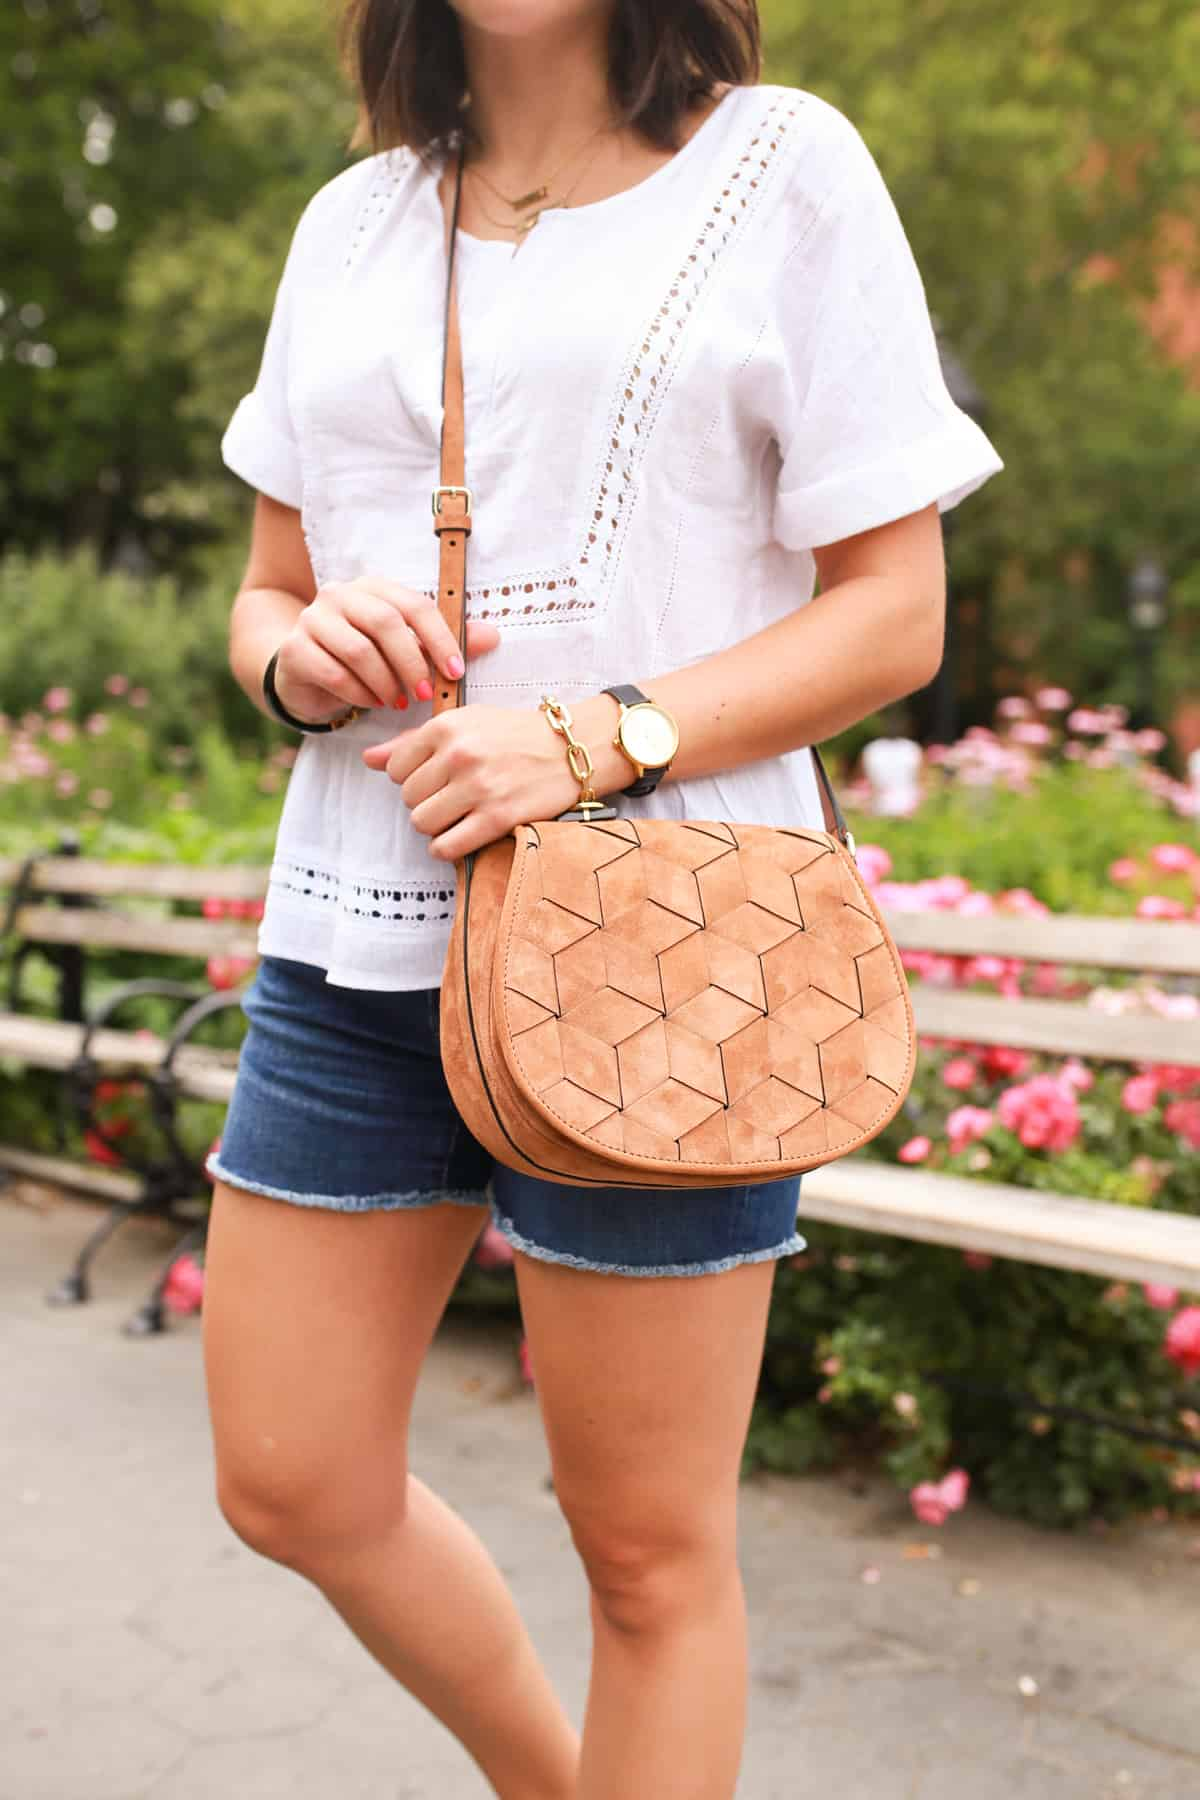 Casual tourist outfit, summer outfit ideas - My Style Vita - @mystylevita